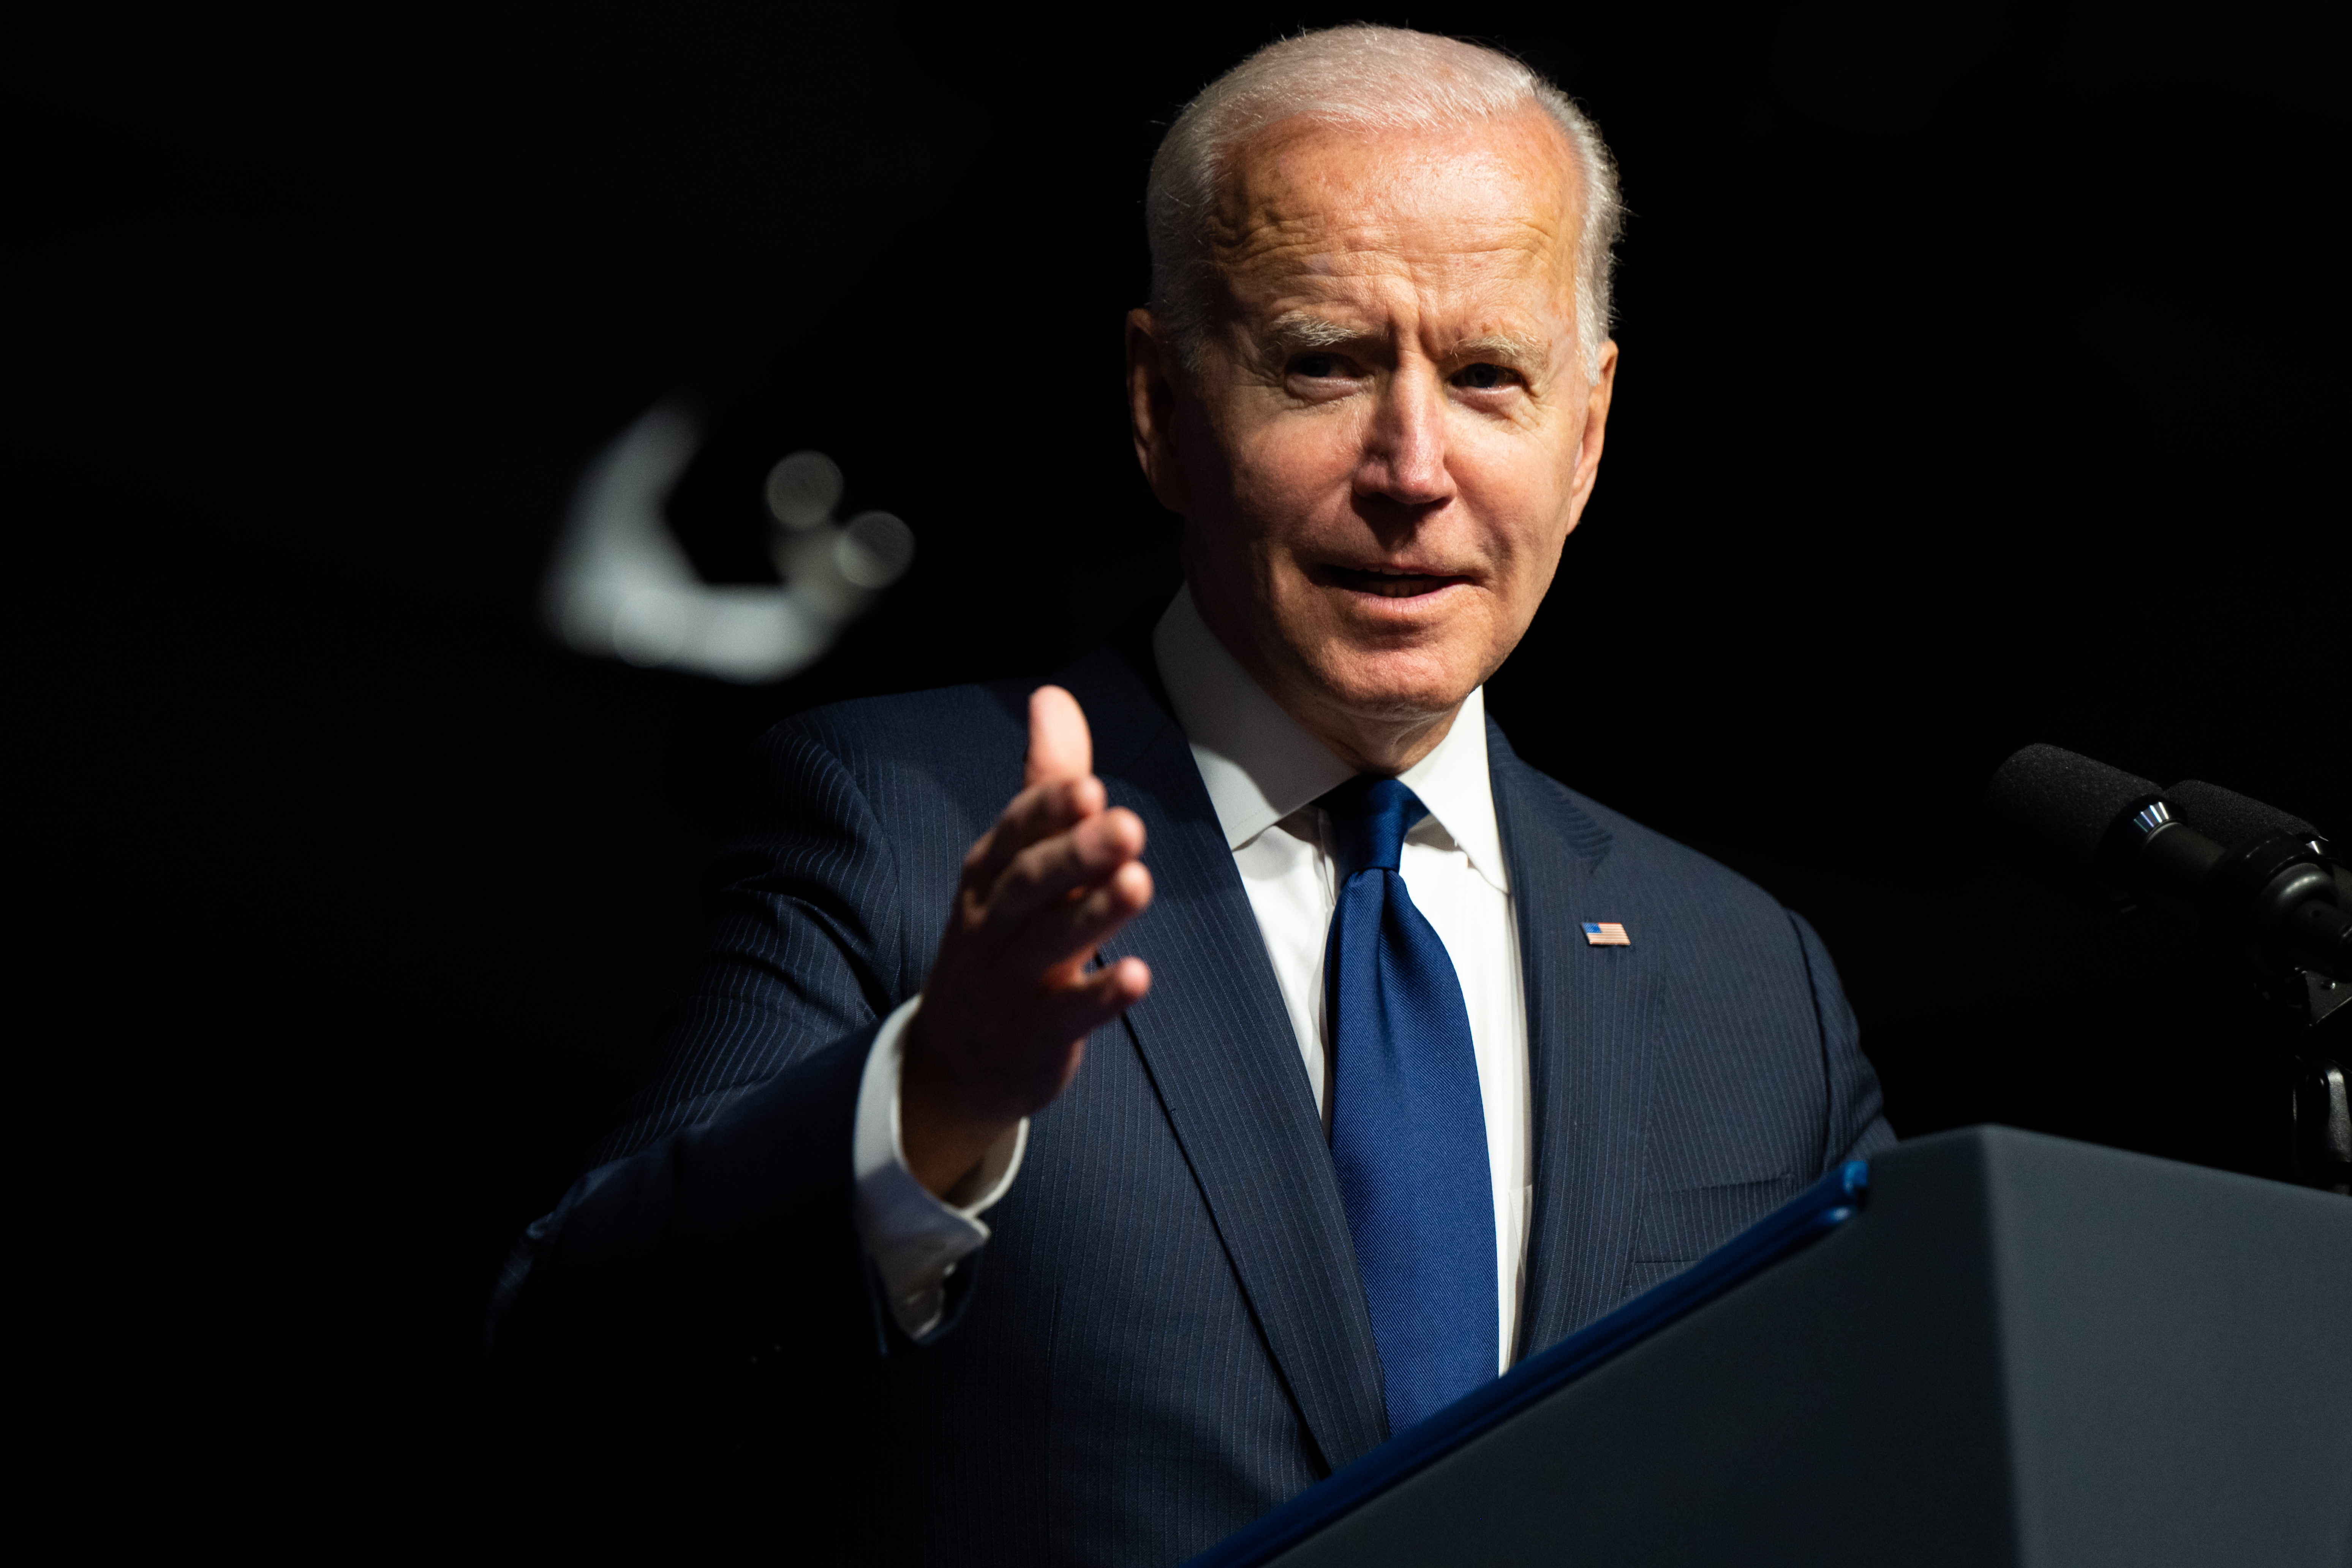 President Joe Biden stands at a lectern and gestures with his hand while speaking.